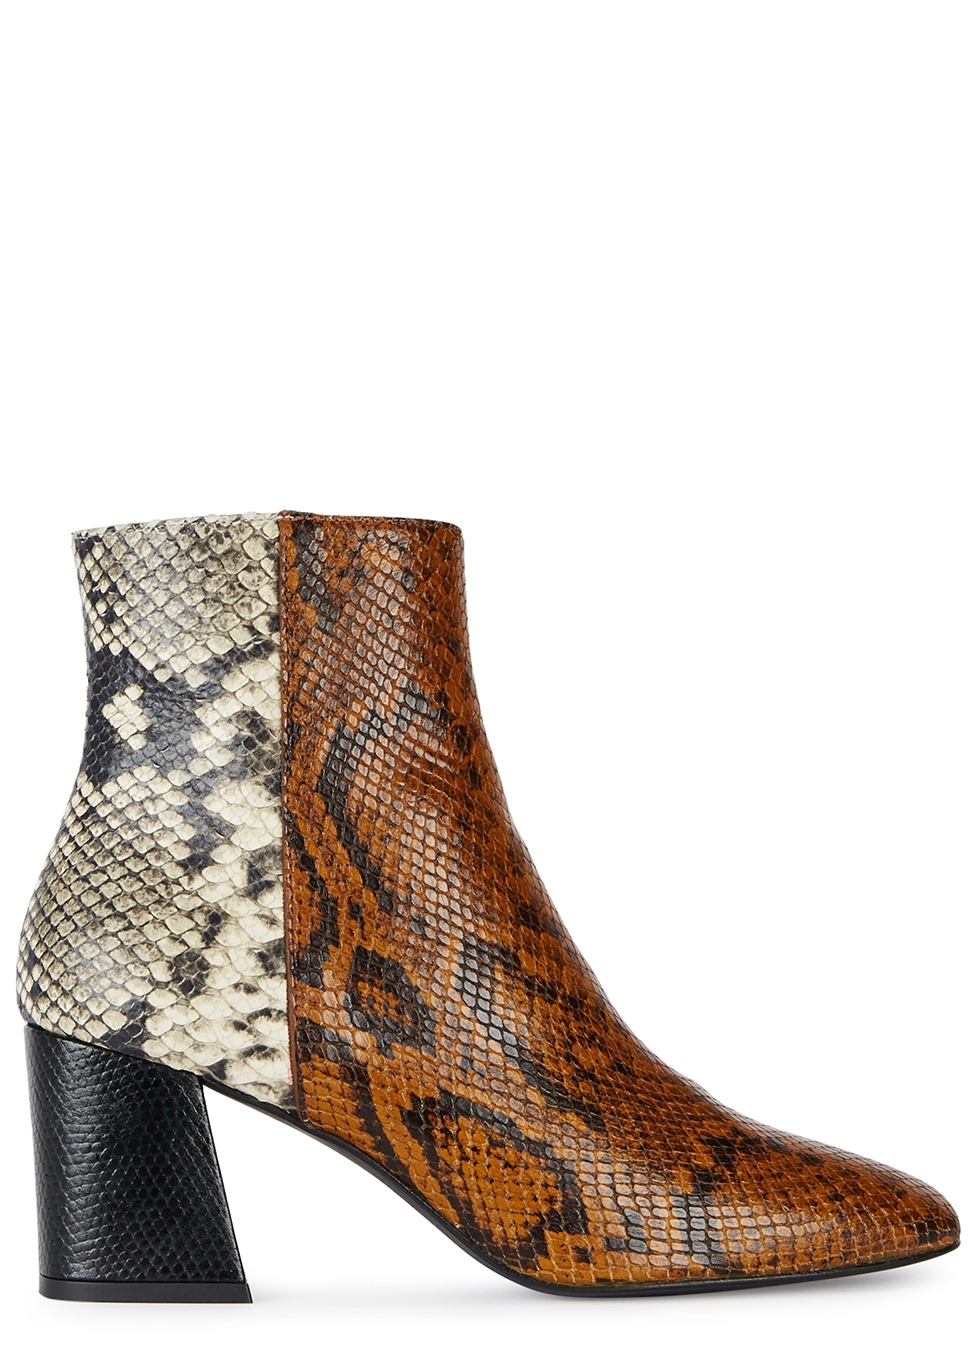 FREDA SALVADOR Charm Python And Leather Ankle Boots in Black